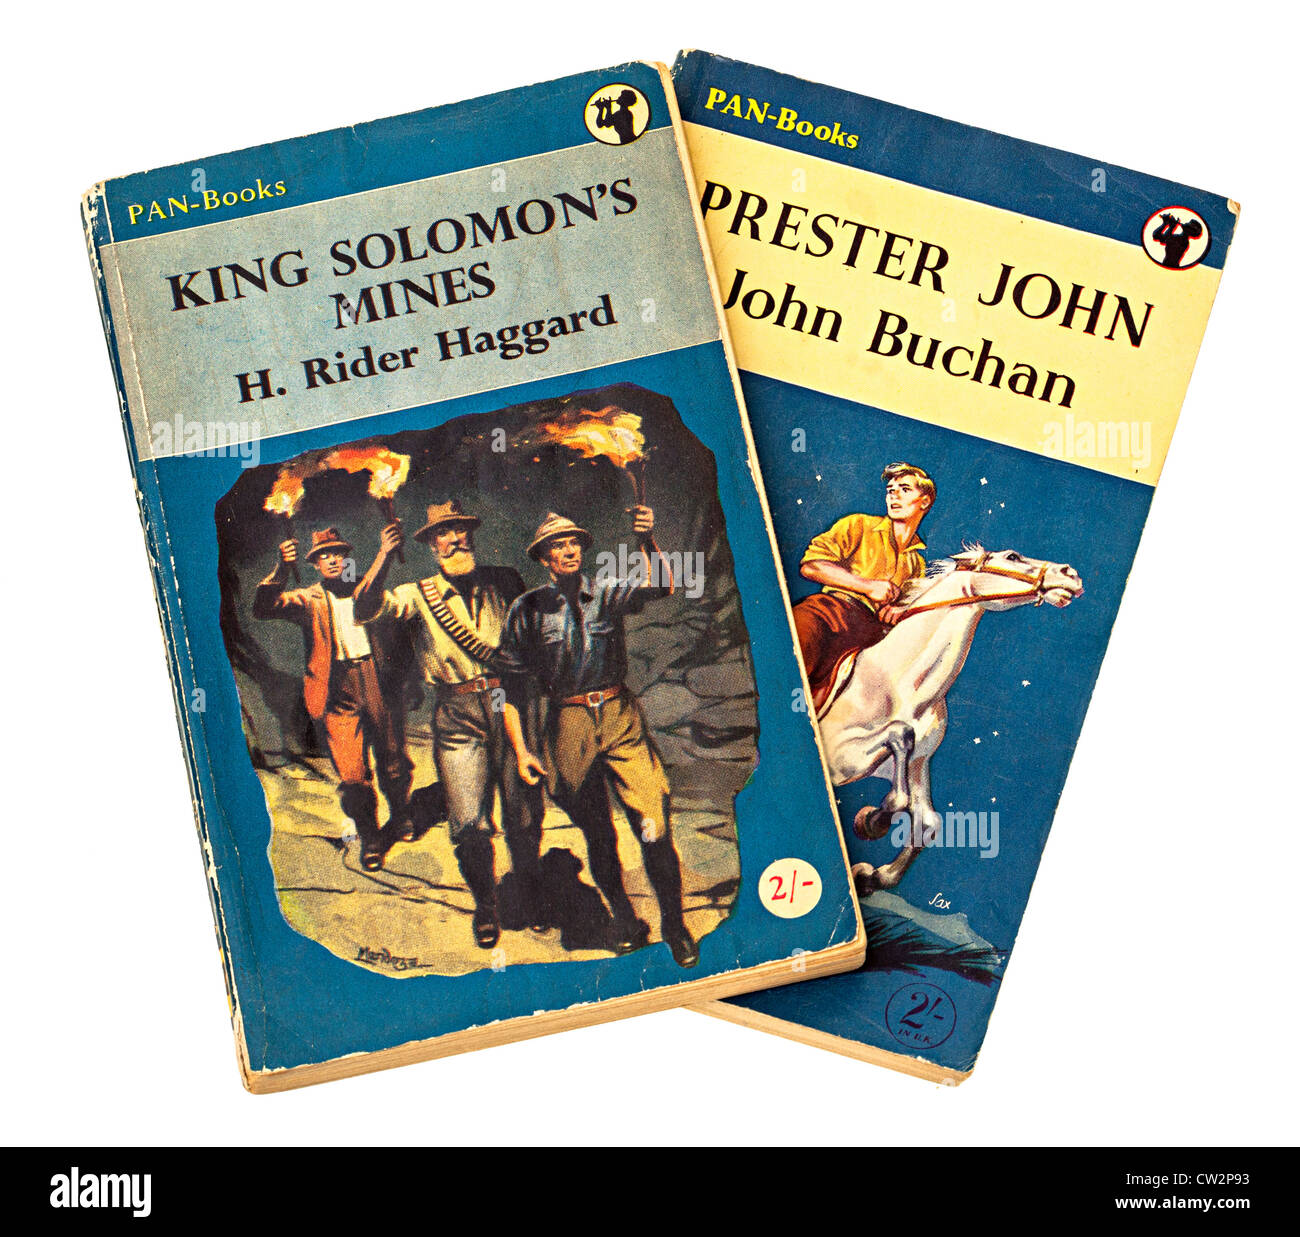 Classic childrens adventure story books by Jules Verne, H. Rider Haggard and John Buchan - Stock Image